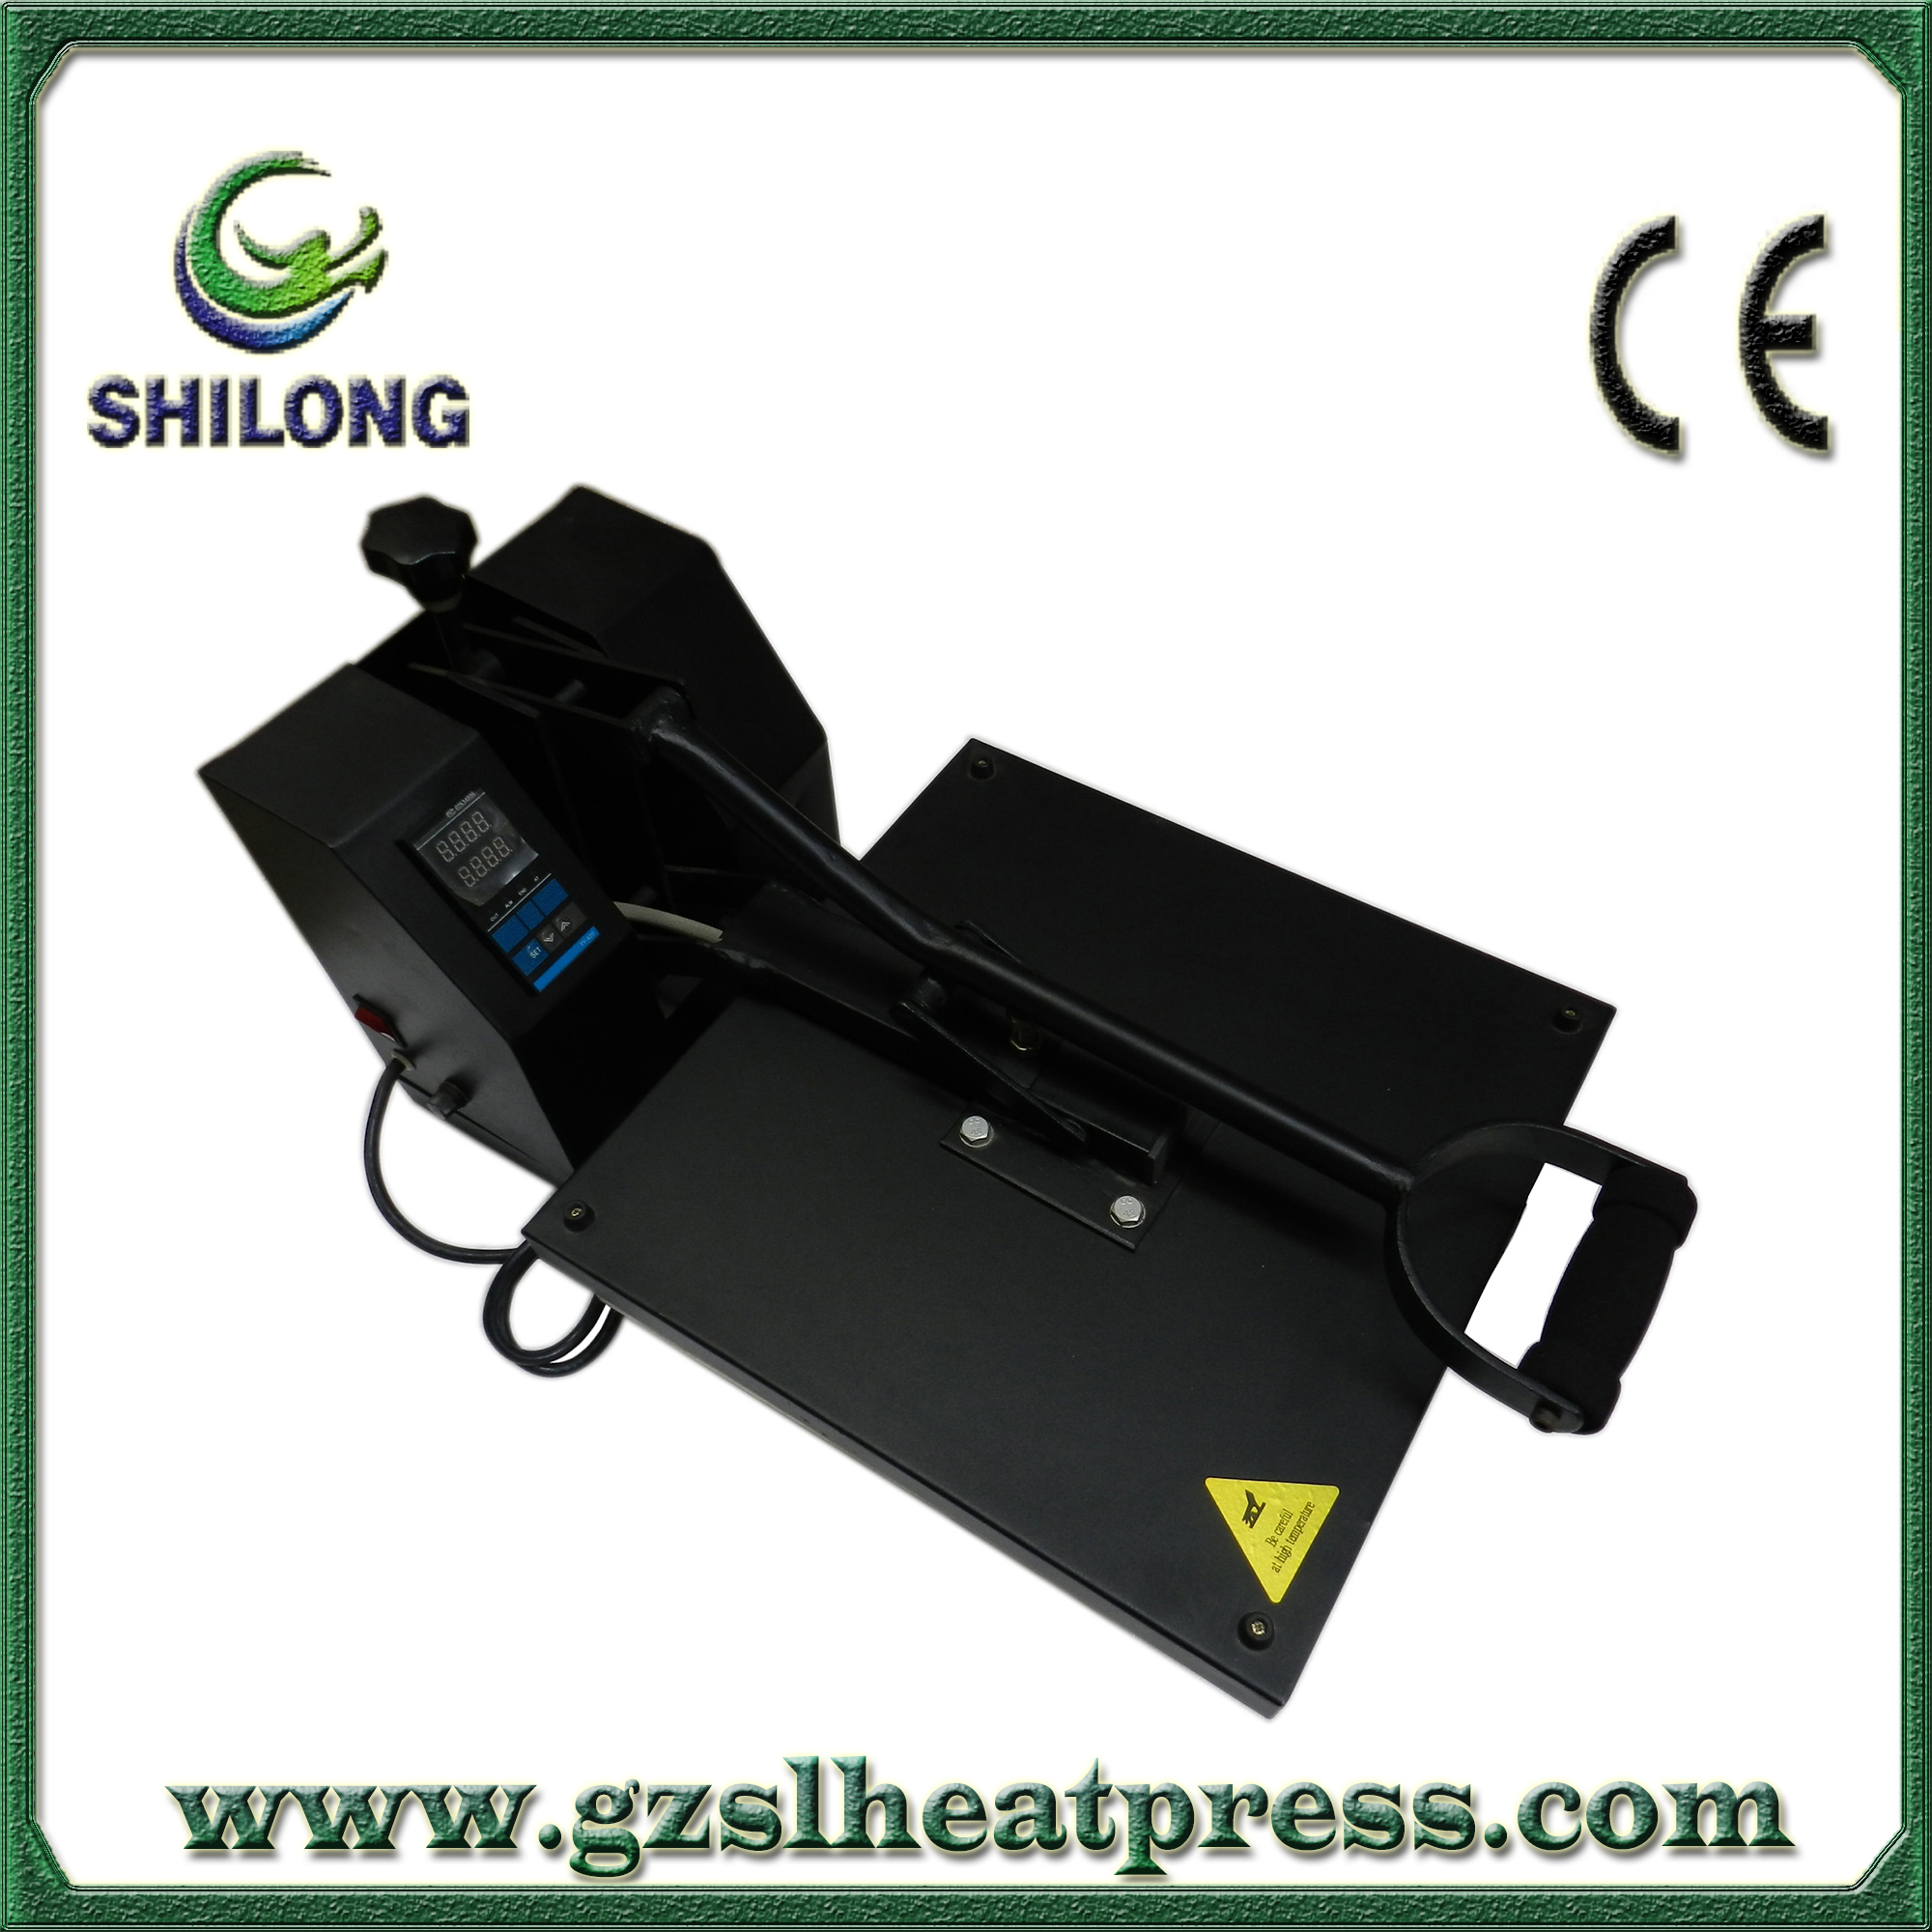 15-by-15 inch high quality small size hot transfer machine heat press machine for T shirt manufacturer China (CE certification)